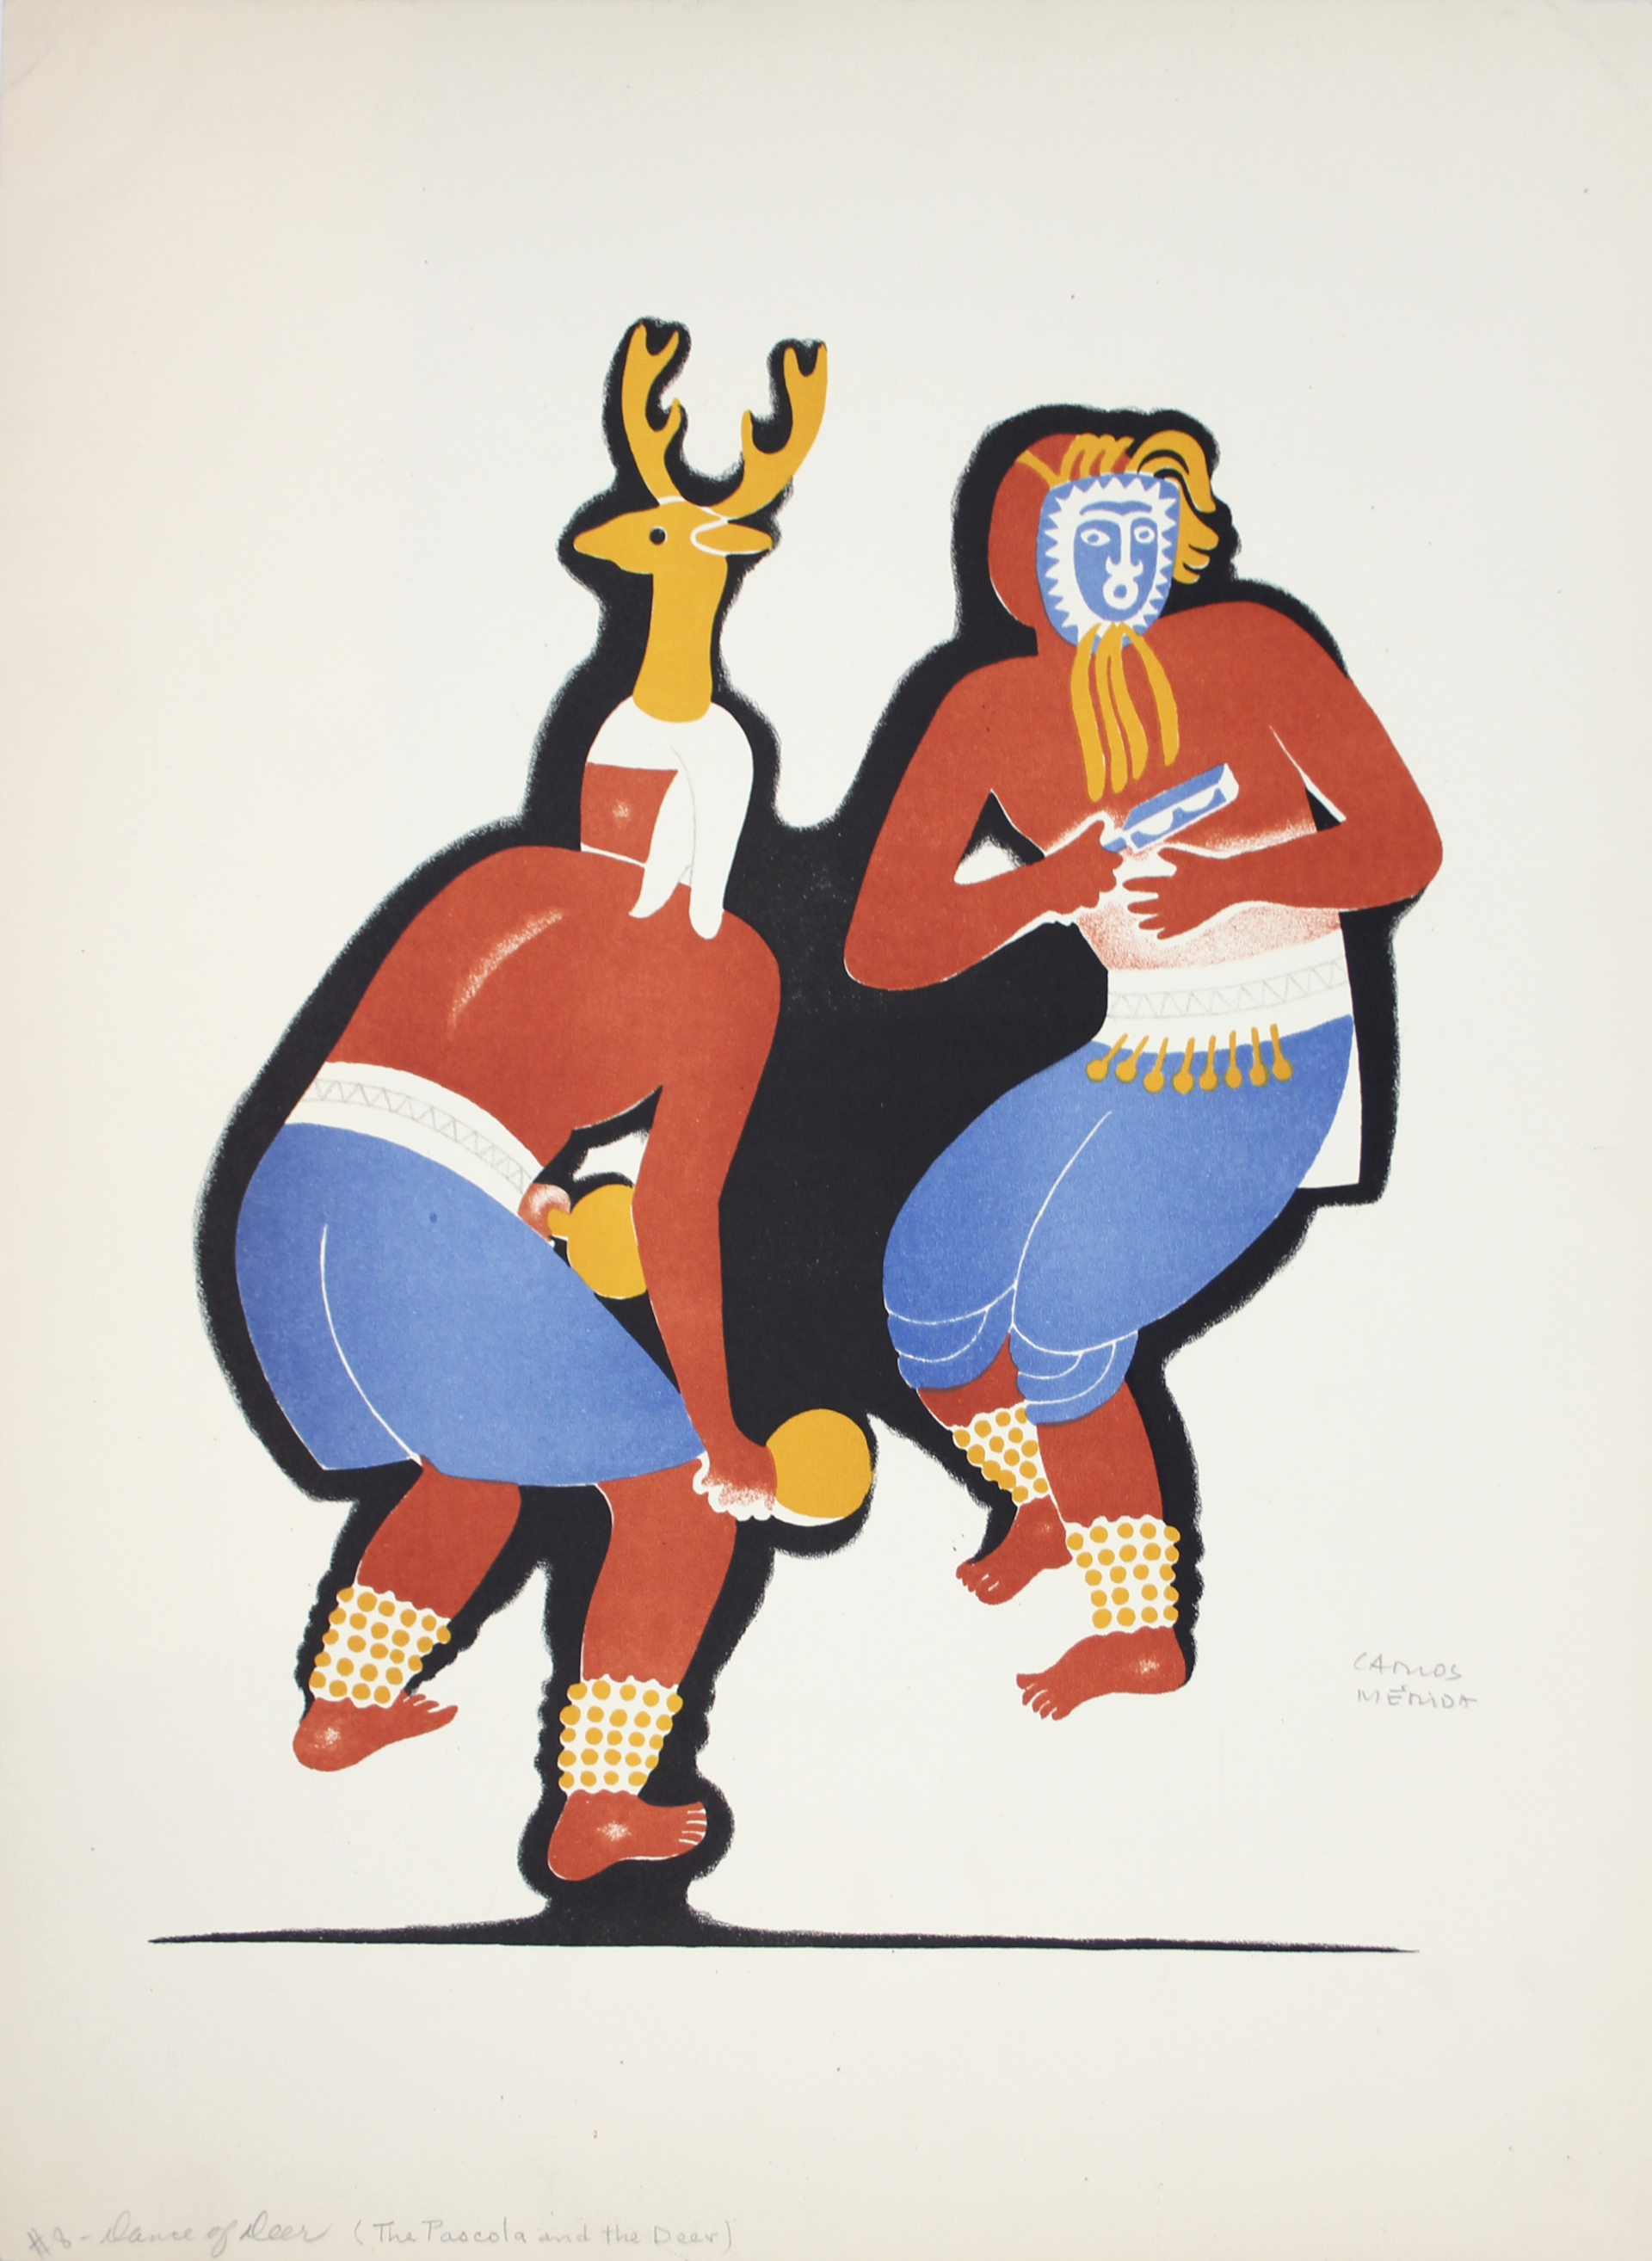 The Pascola and the Deer by Carlos Mérida (1891 - 1985)